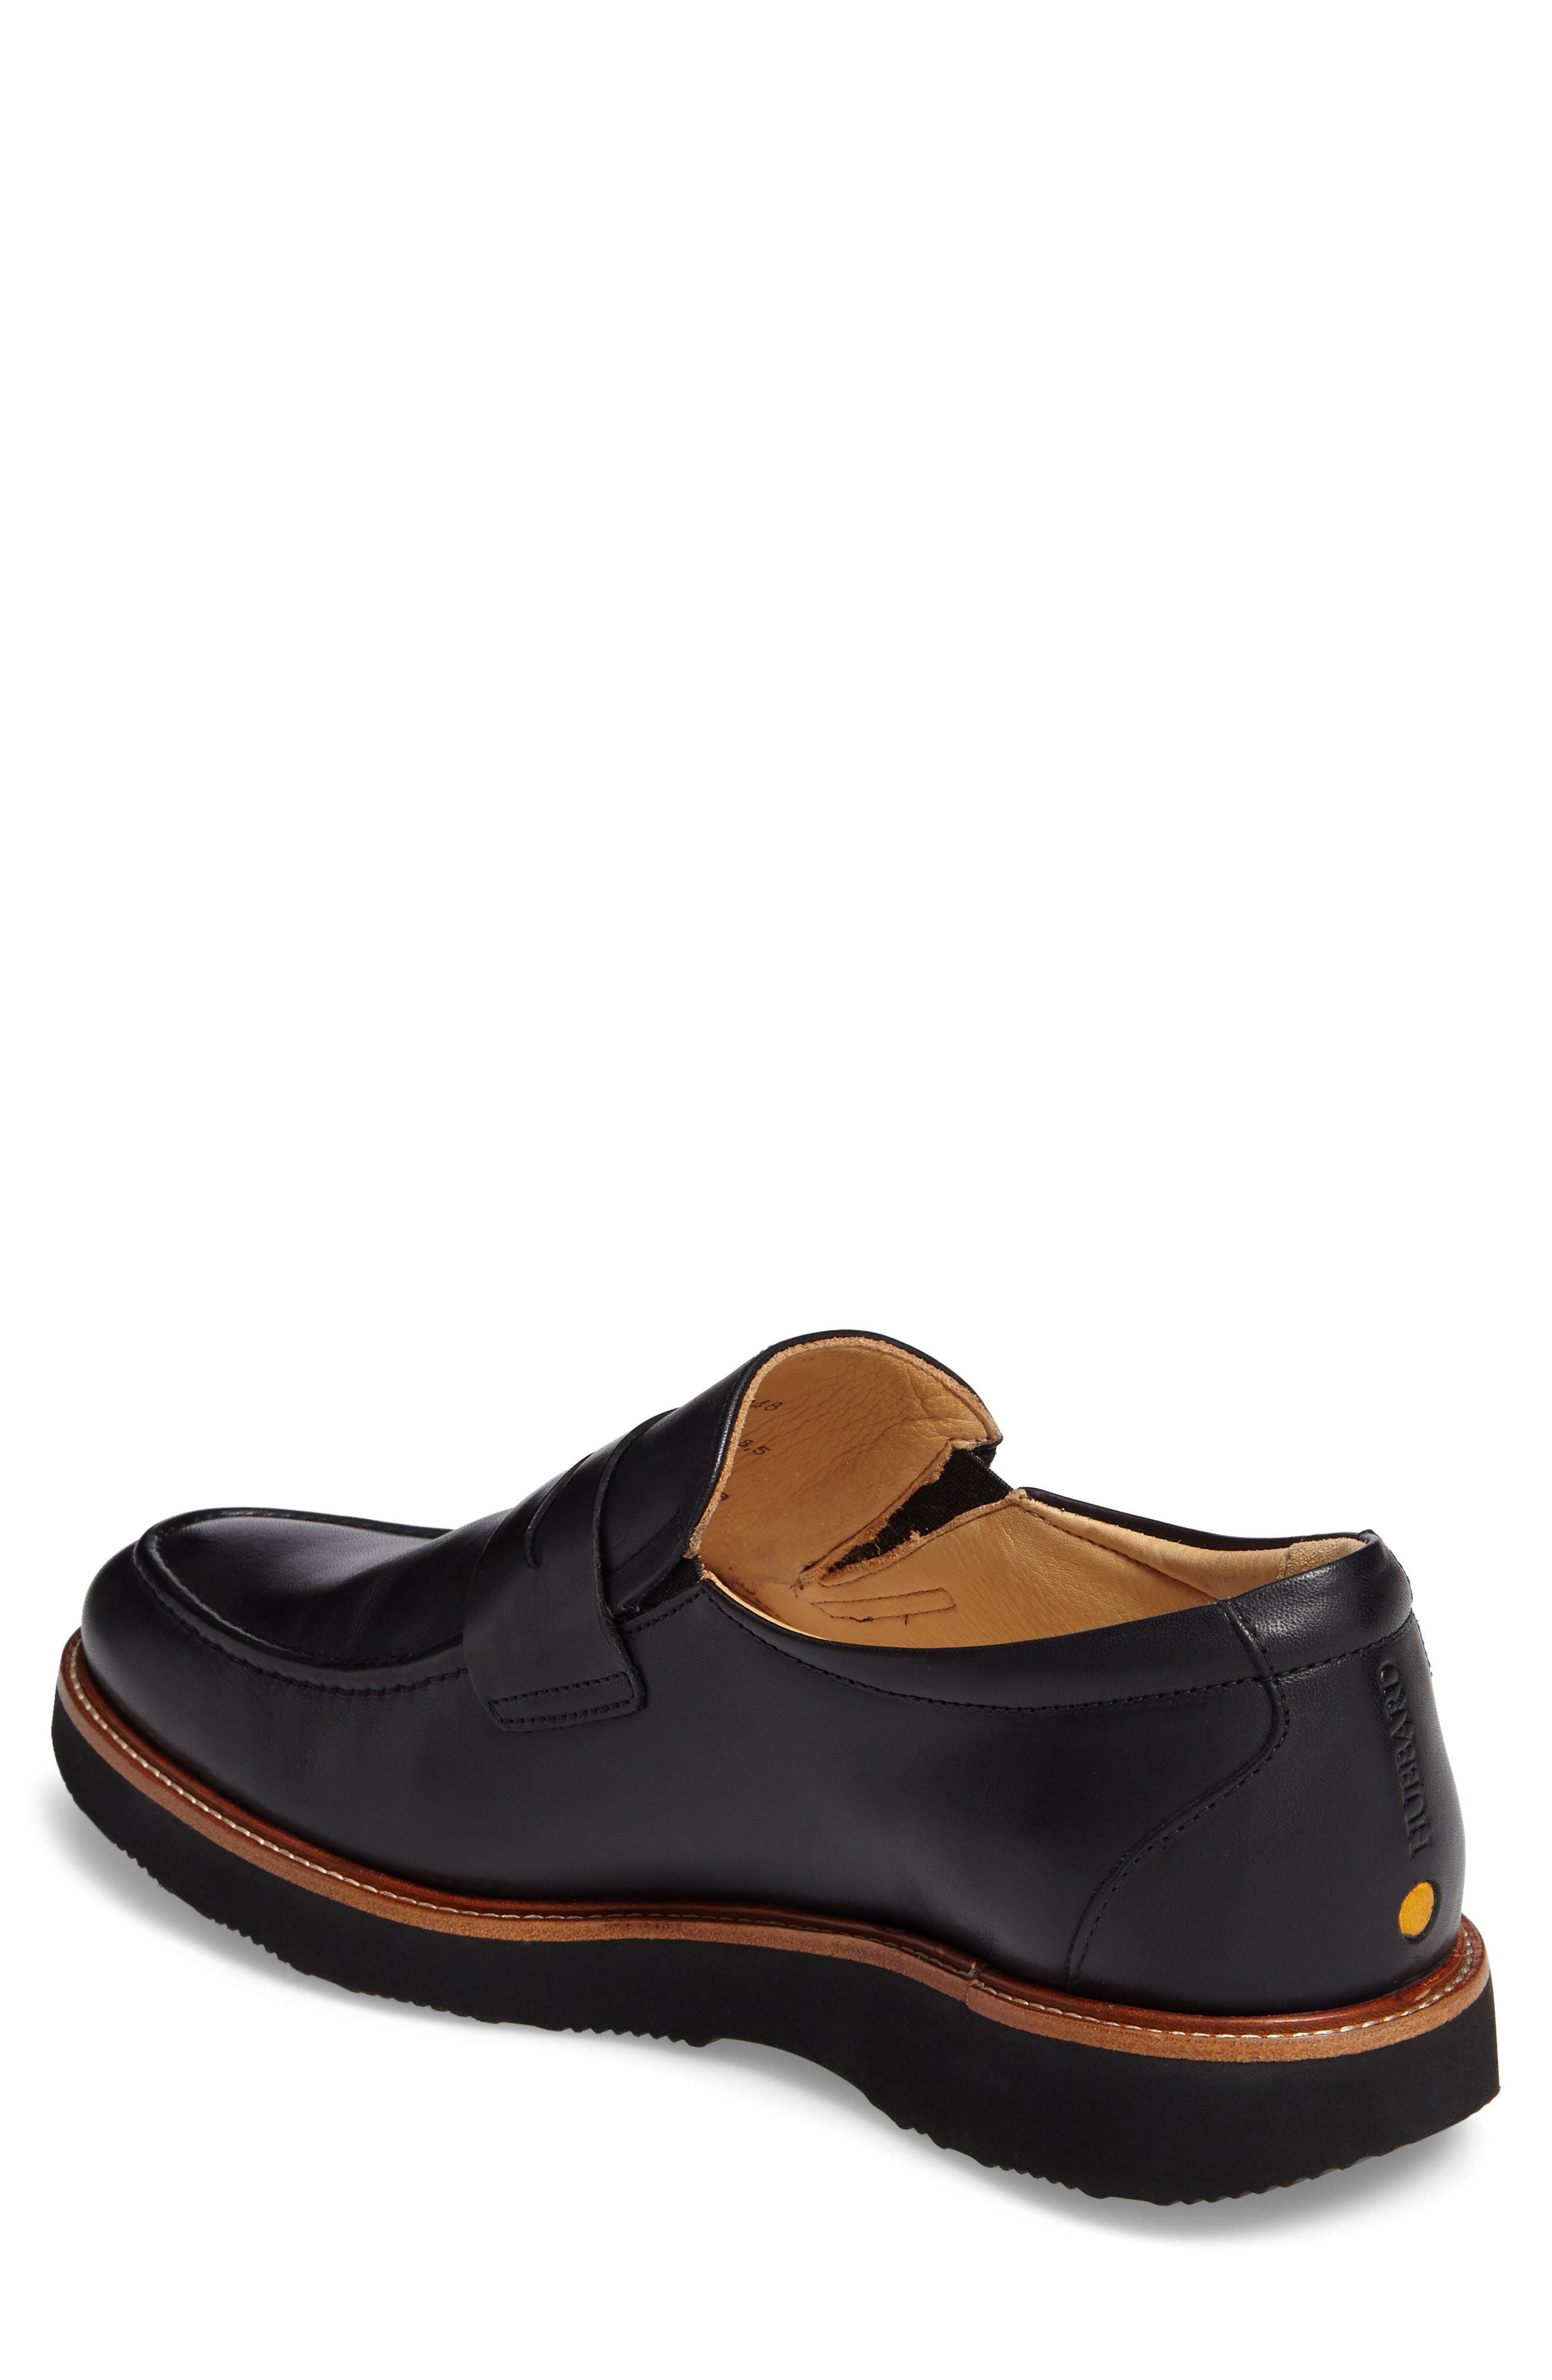 Ivy Legend Penny Loafer,                             Alternate thumbnail 2, color,                             Black Full Grain